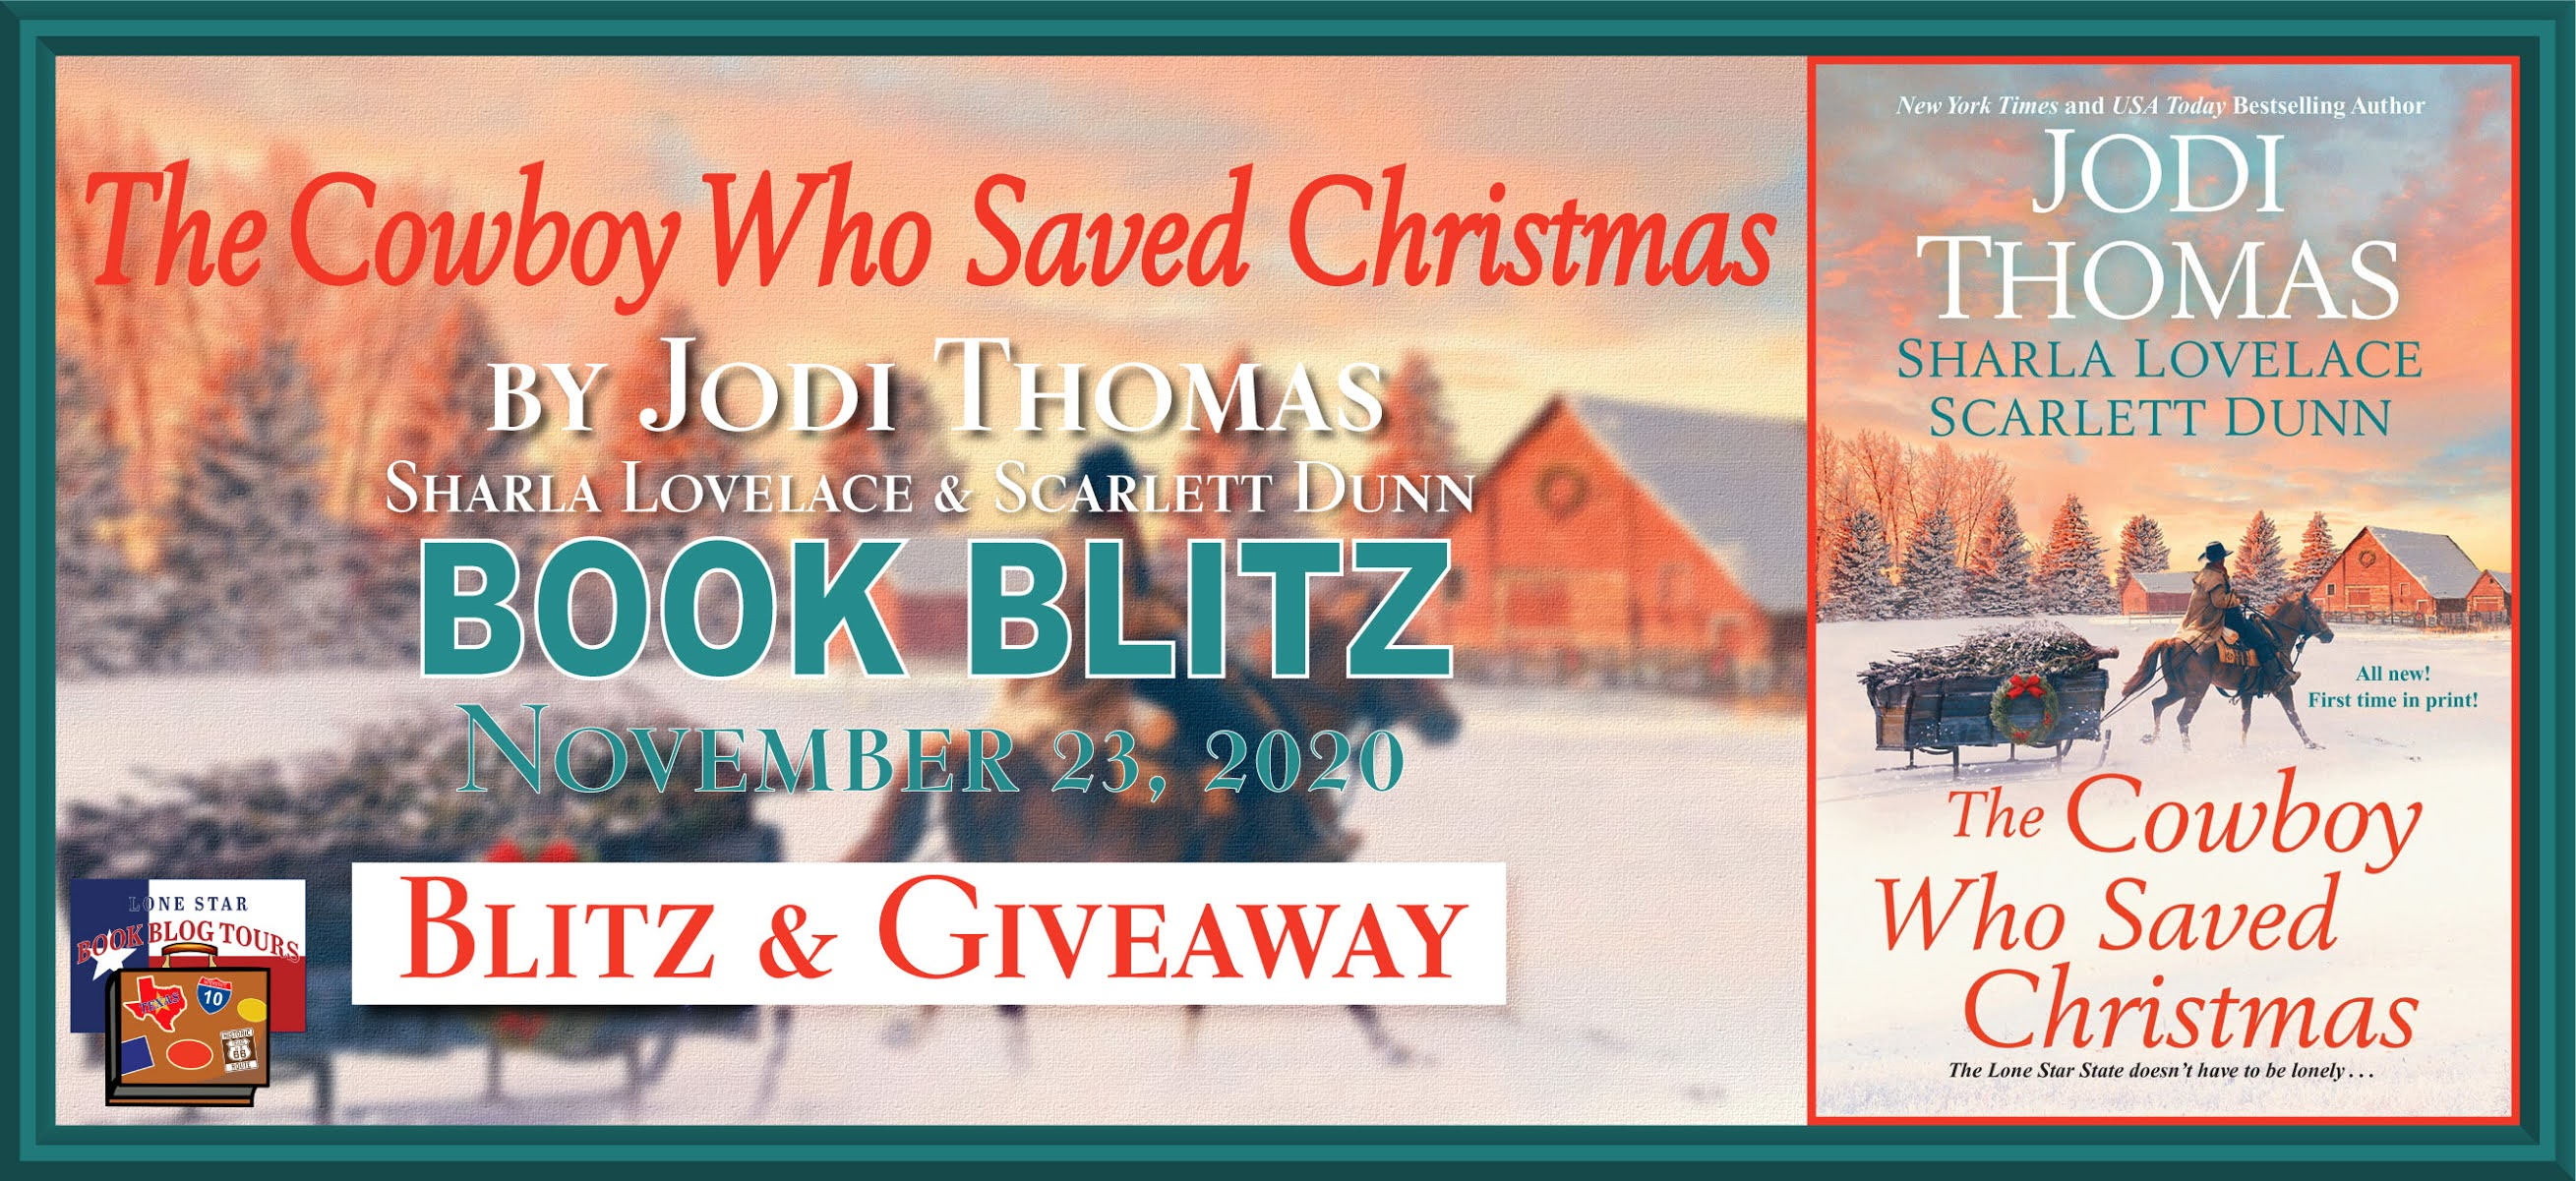 The Cowboy Who Saved Christmas book blog tour promotion banner